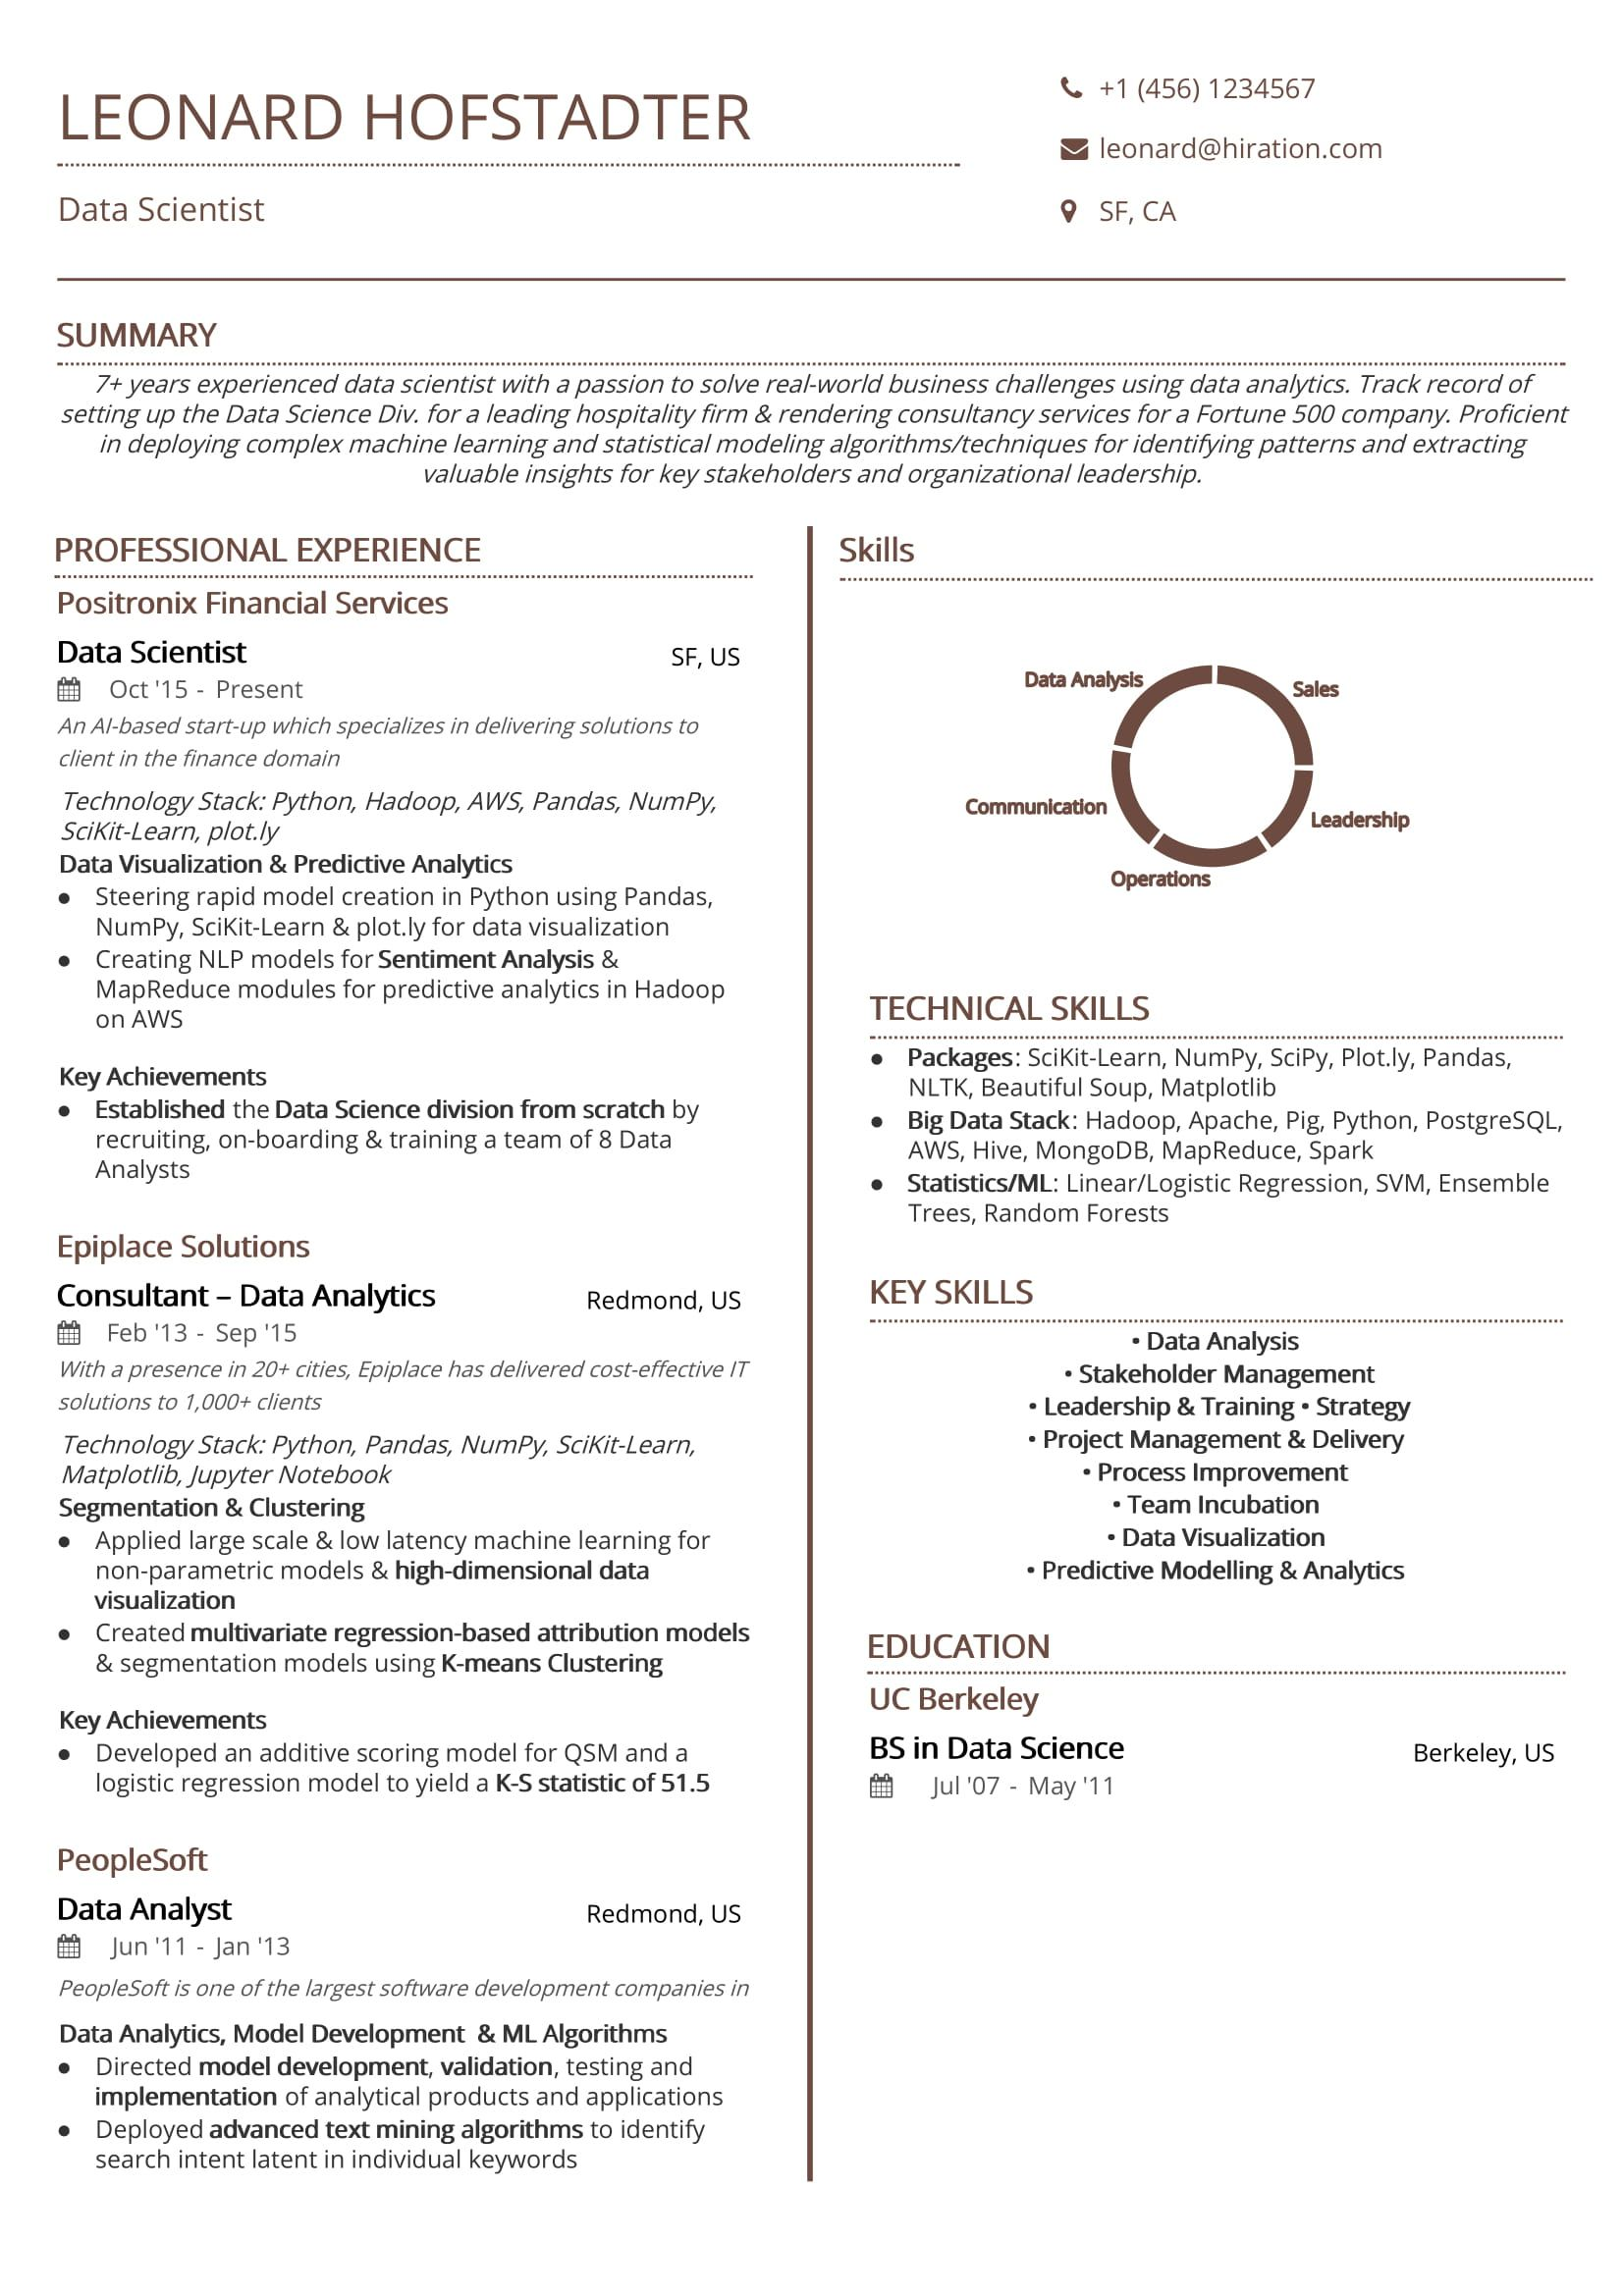 Data Scientist Resume: 2019 Guide to Data Science Resume ...